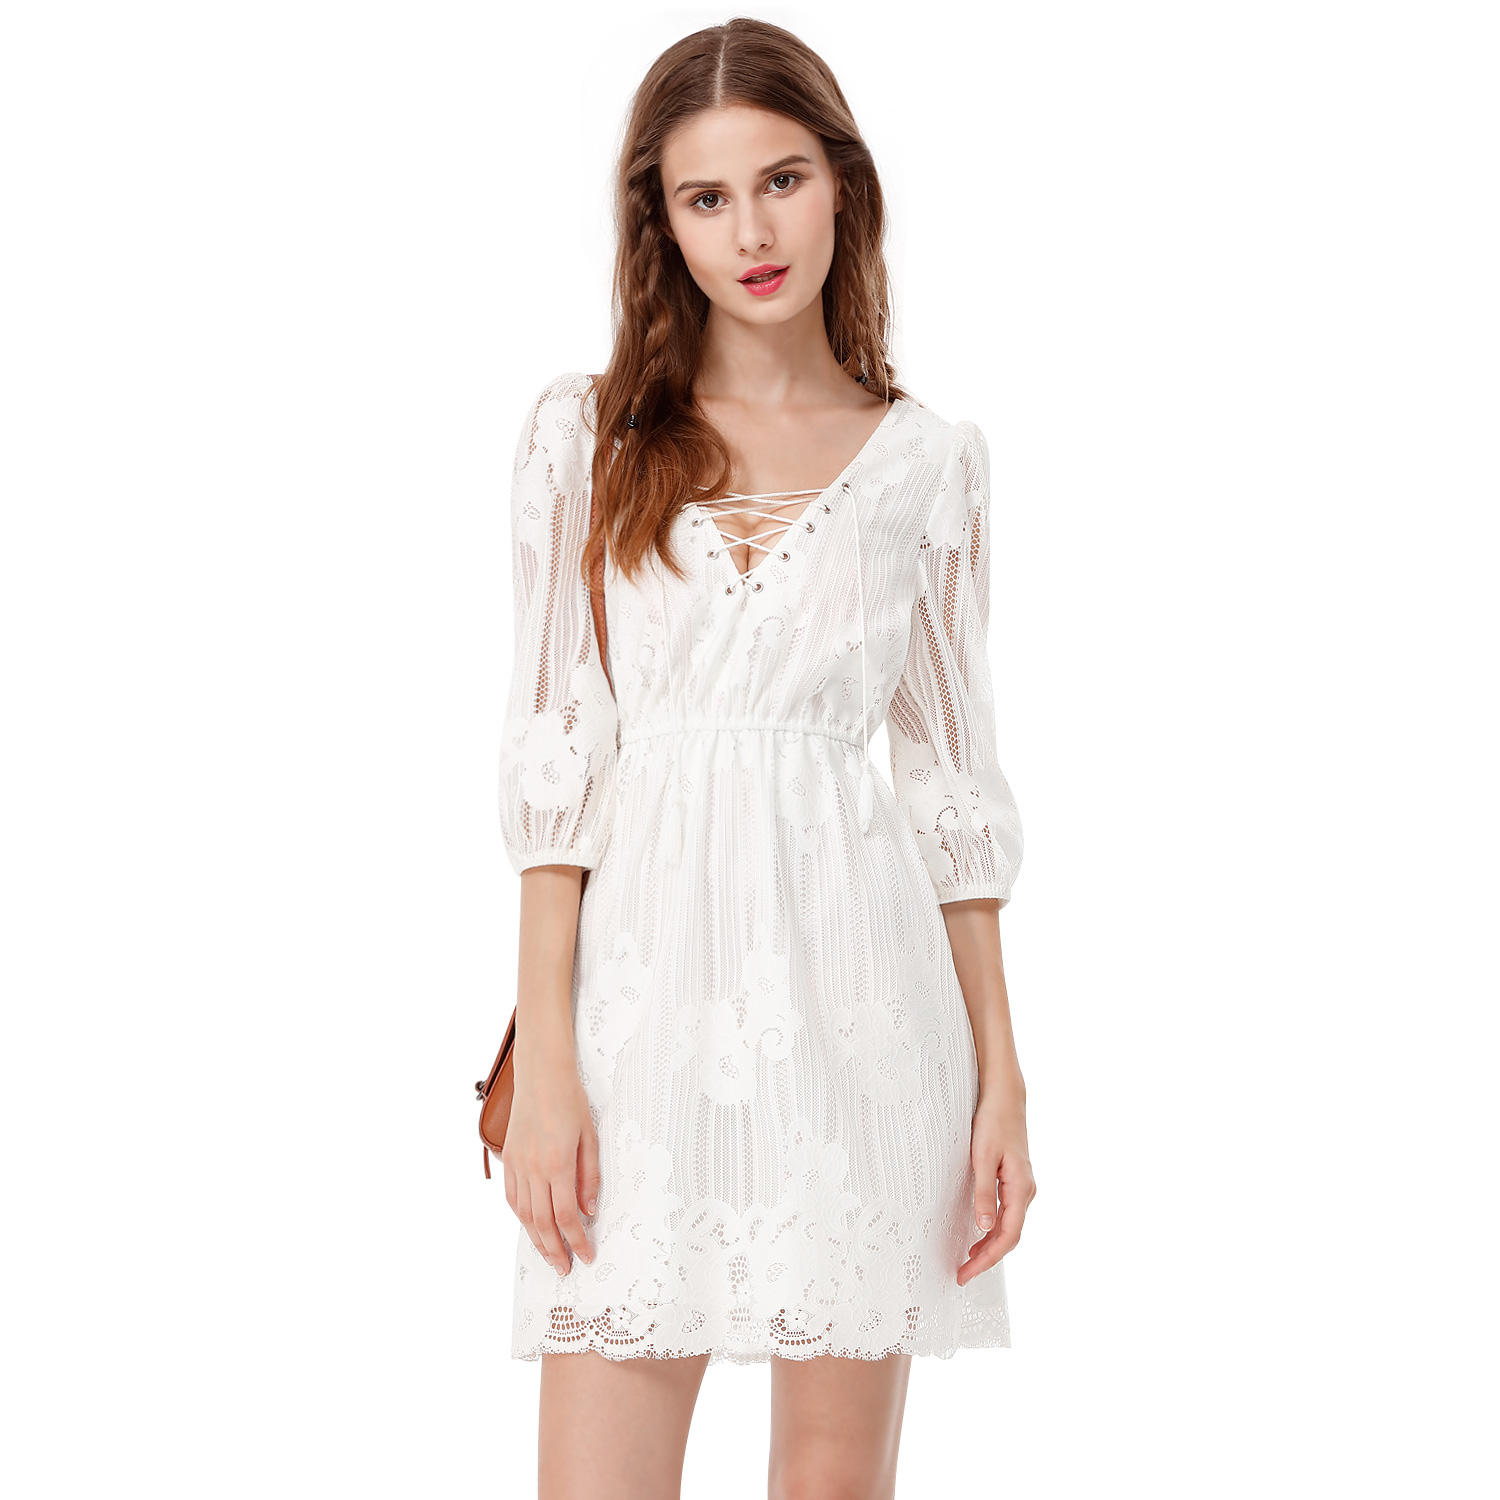 Womens Simple White Short Homecoming Half Sleeve Casual Prom Party Dress 05613  eBay